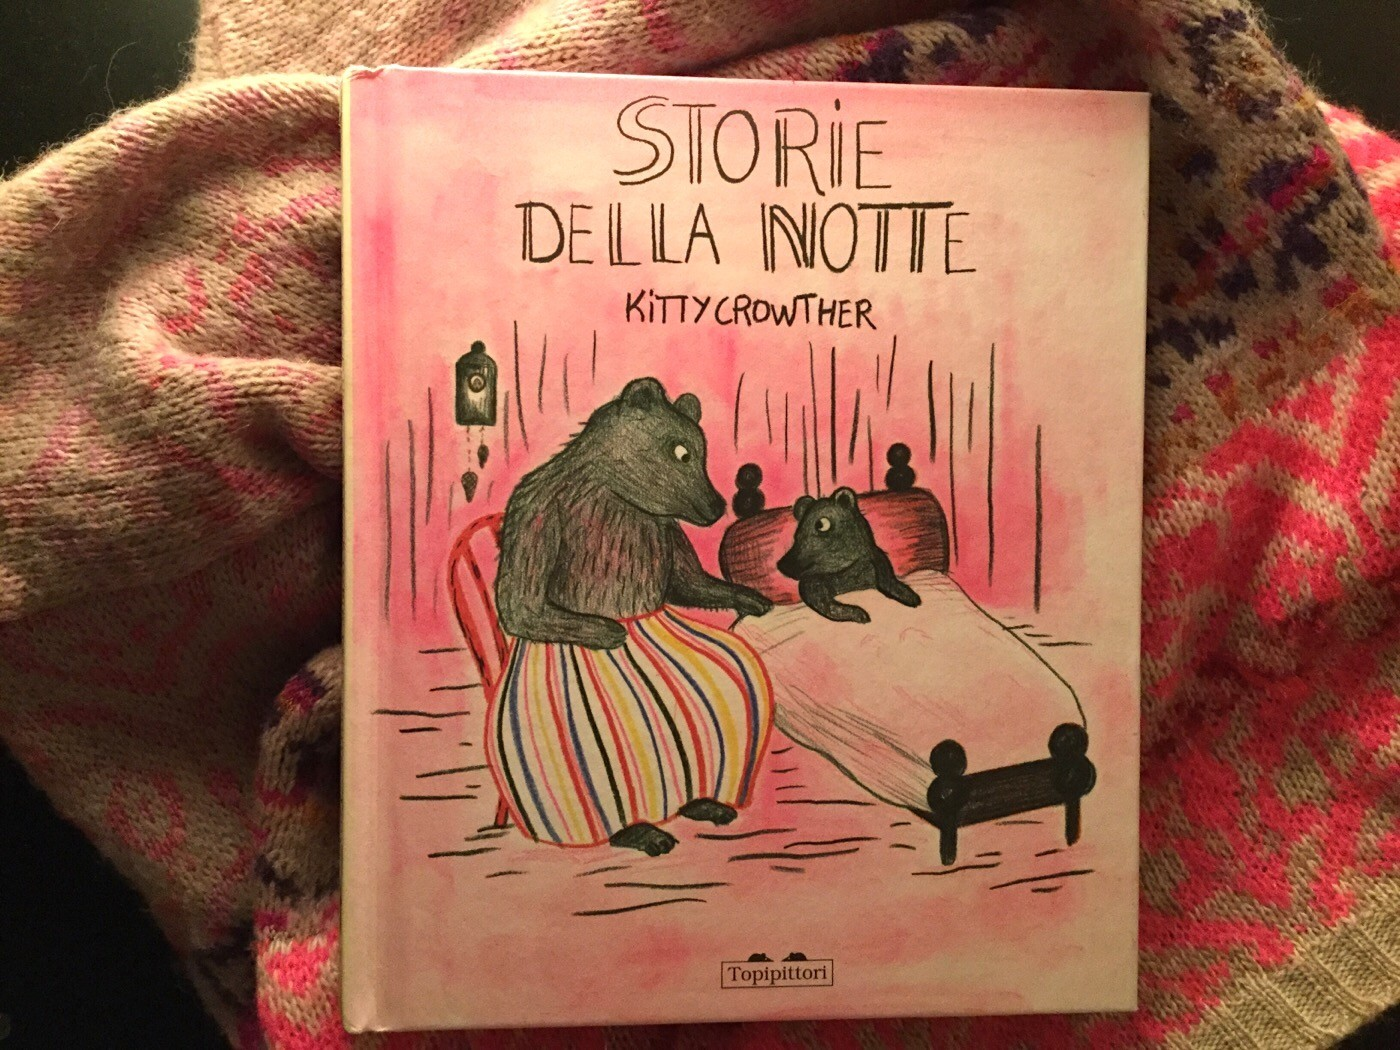 storie-notte-kitty-crowther-topipittori-galline-volanti